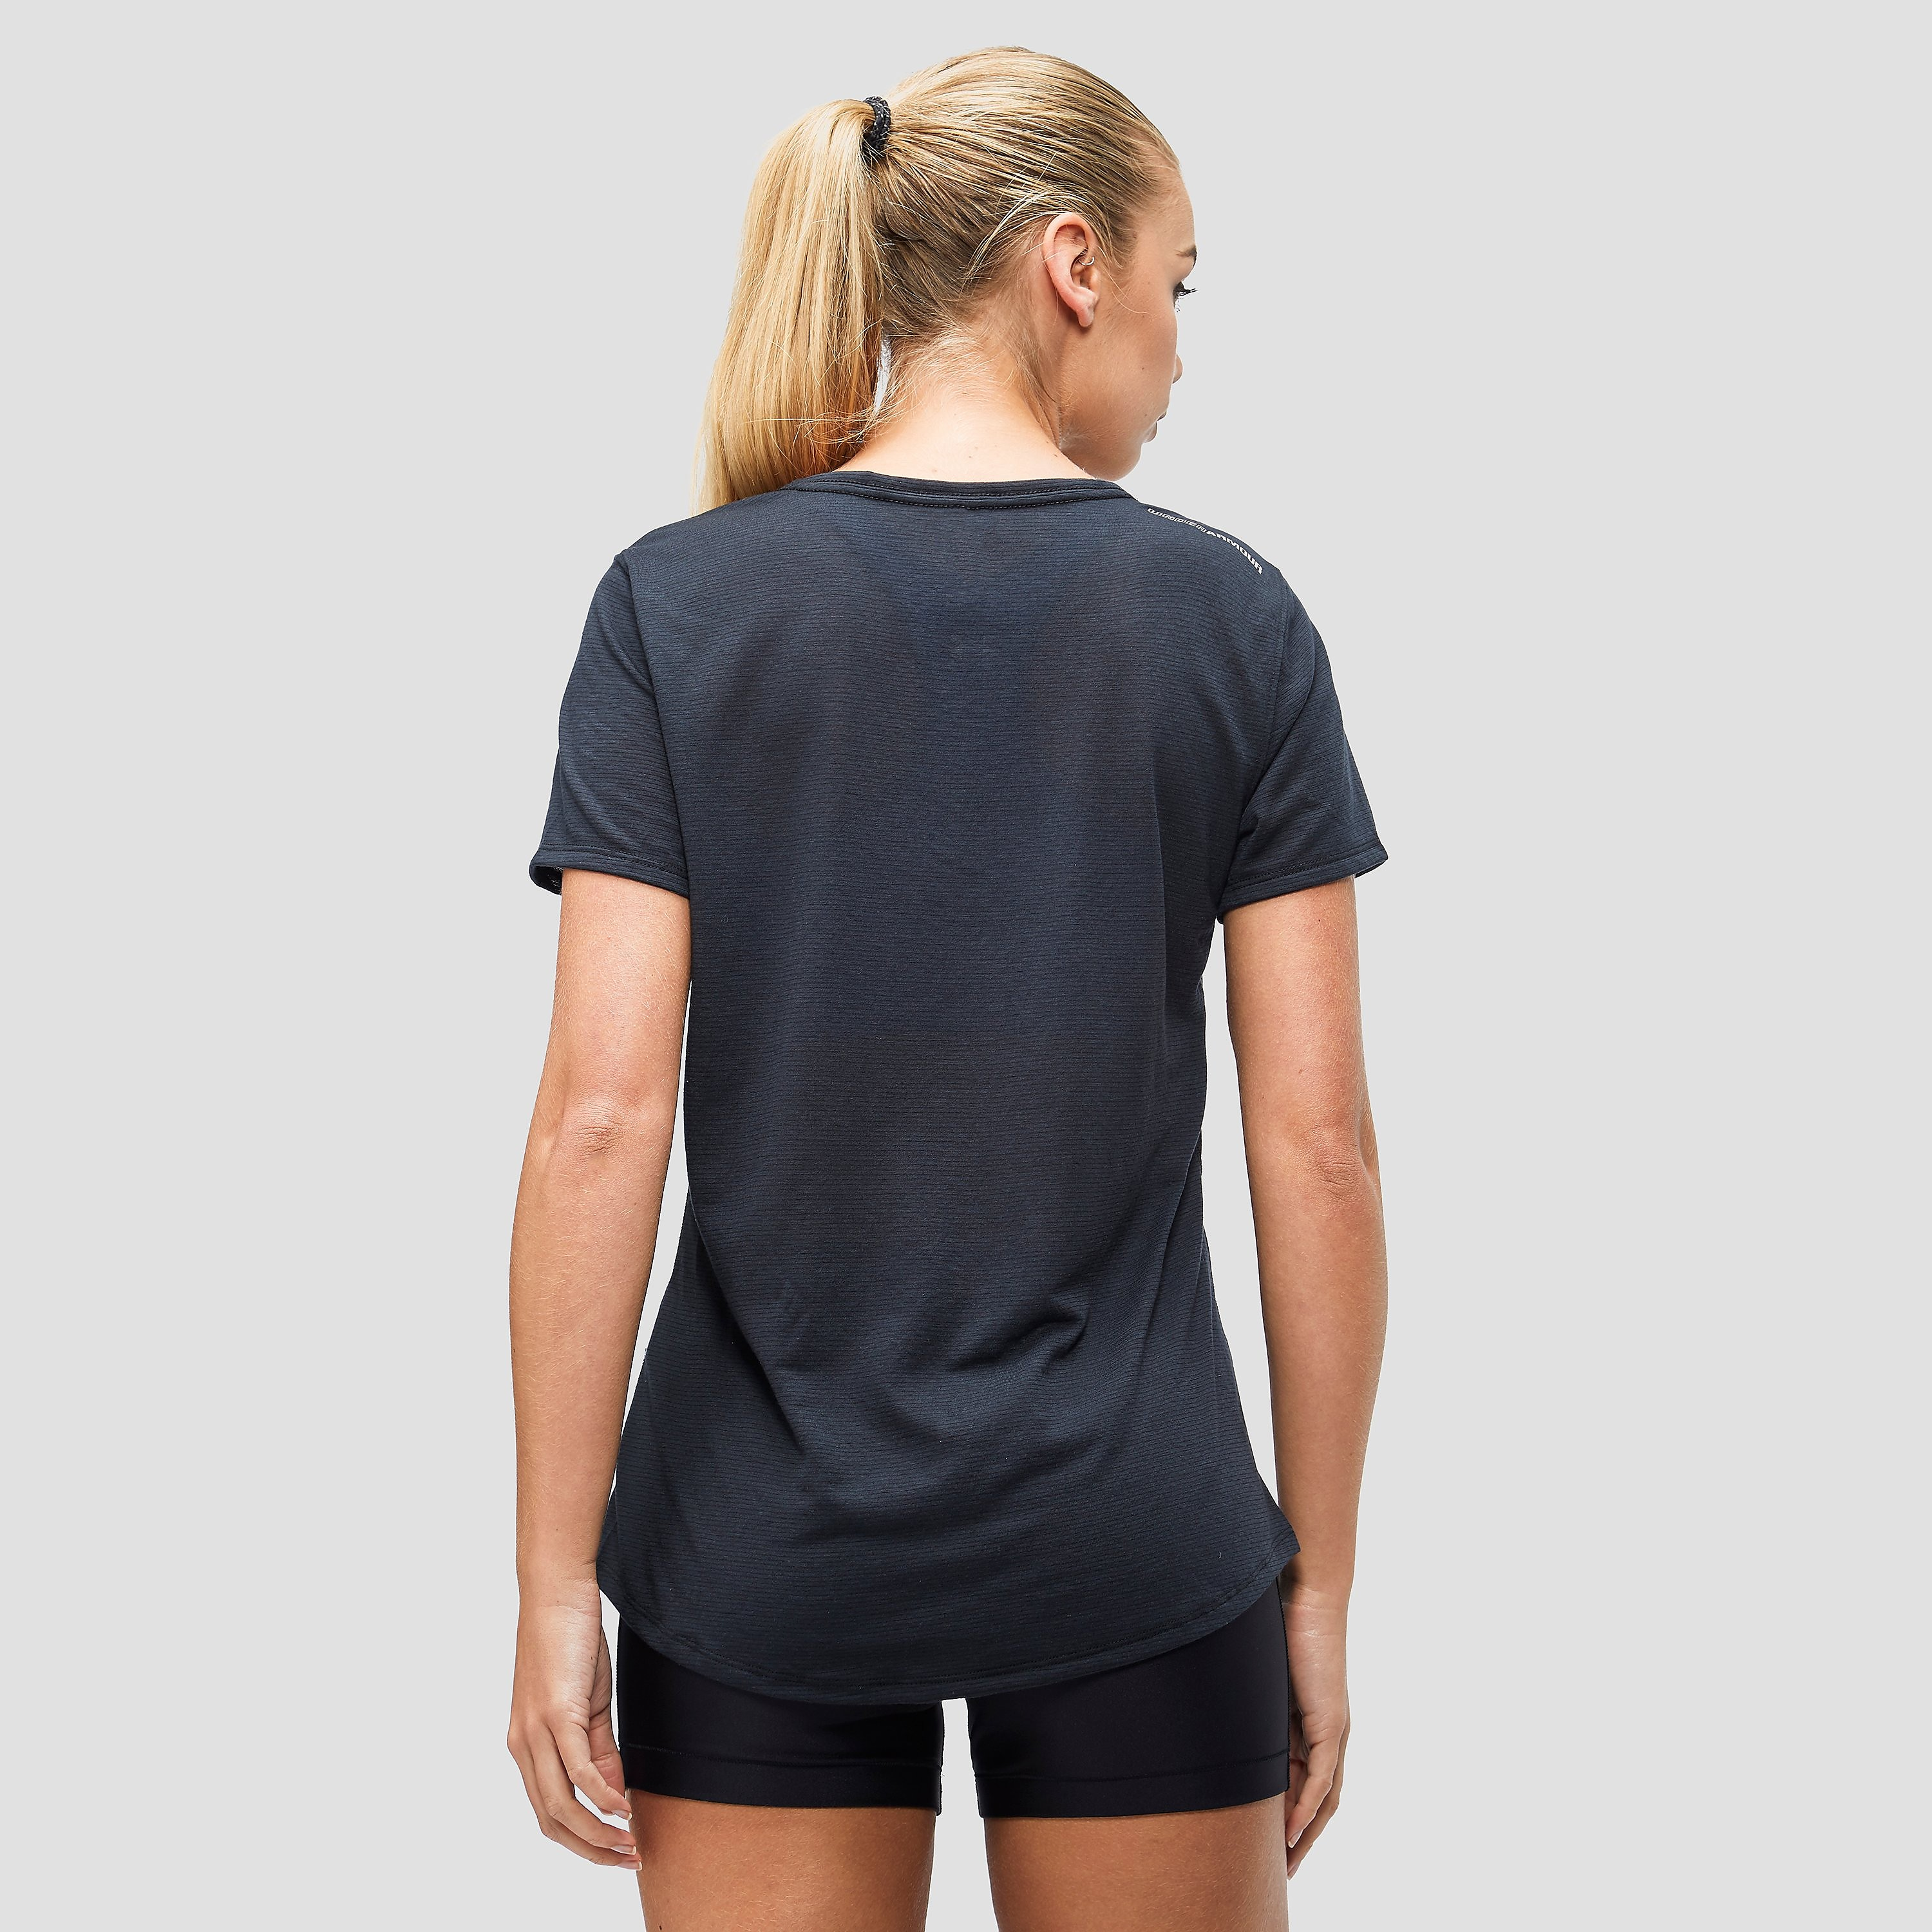 Under Armour Streaker Short Sleeve Women's  T-Shirt